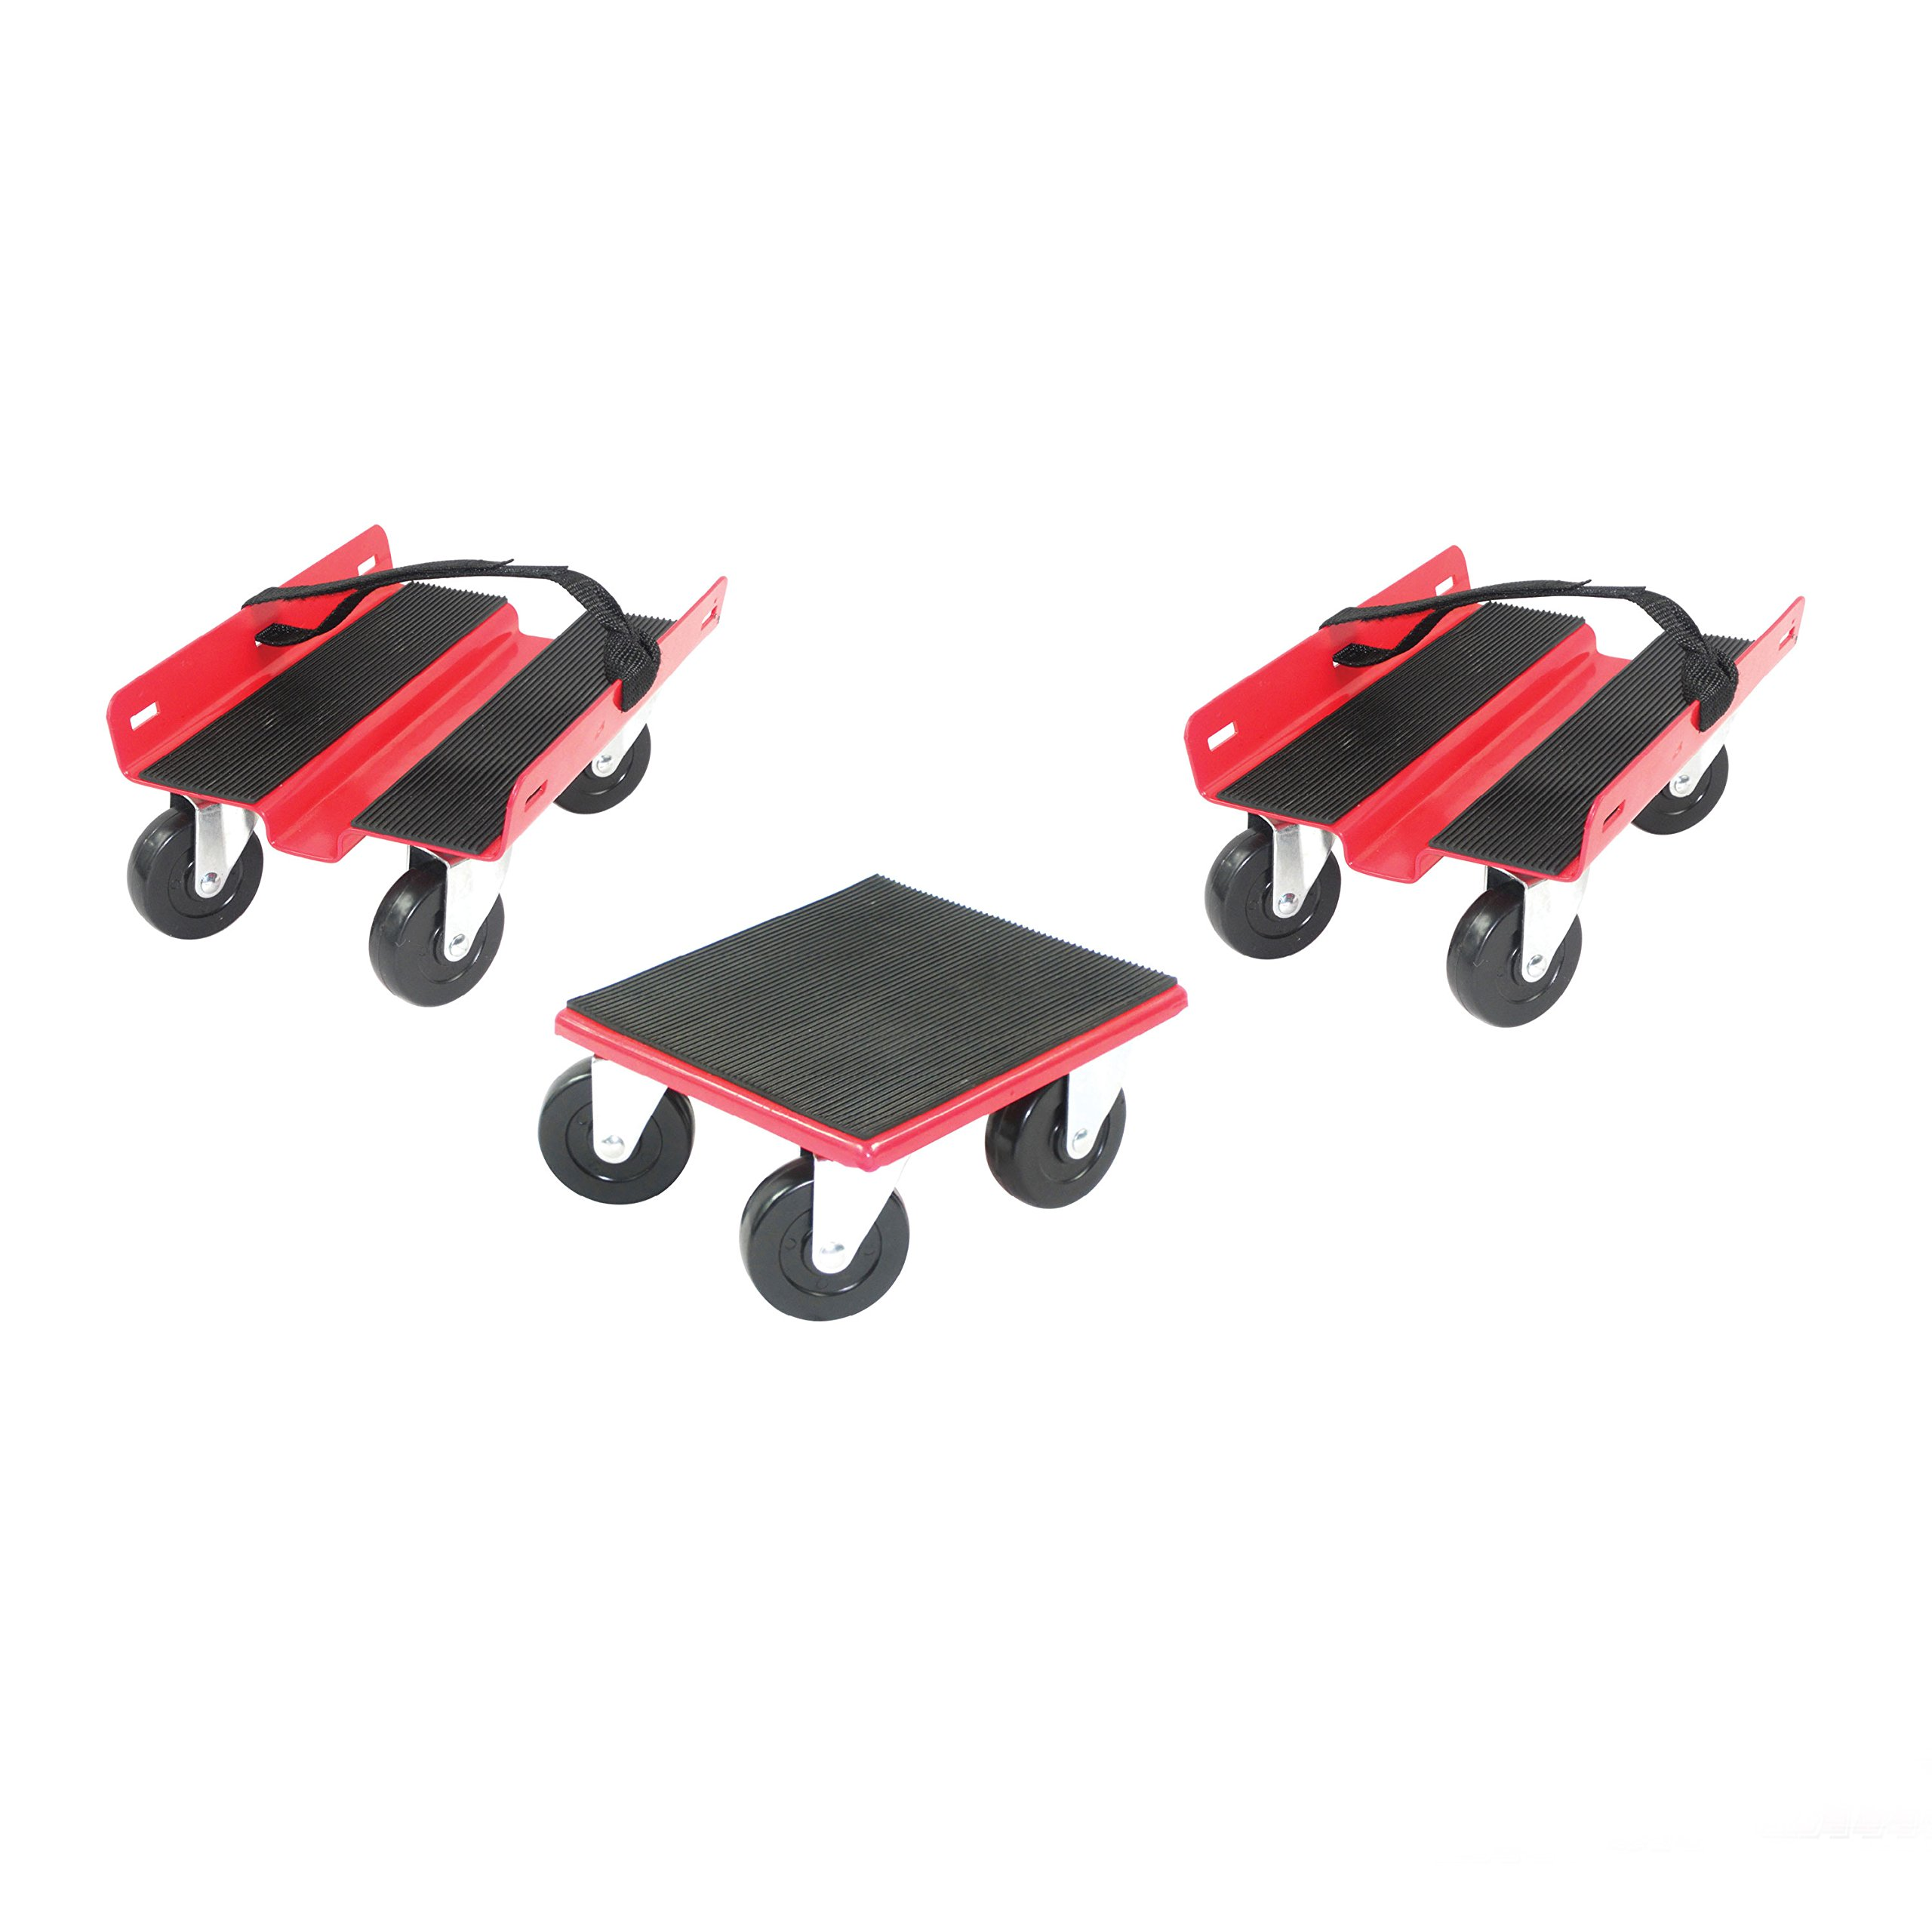 Extreme Max 5800.2000 Snowmobile Dolly System 3 Pack